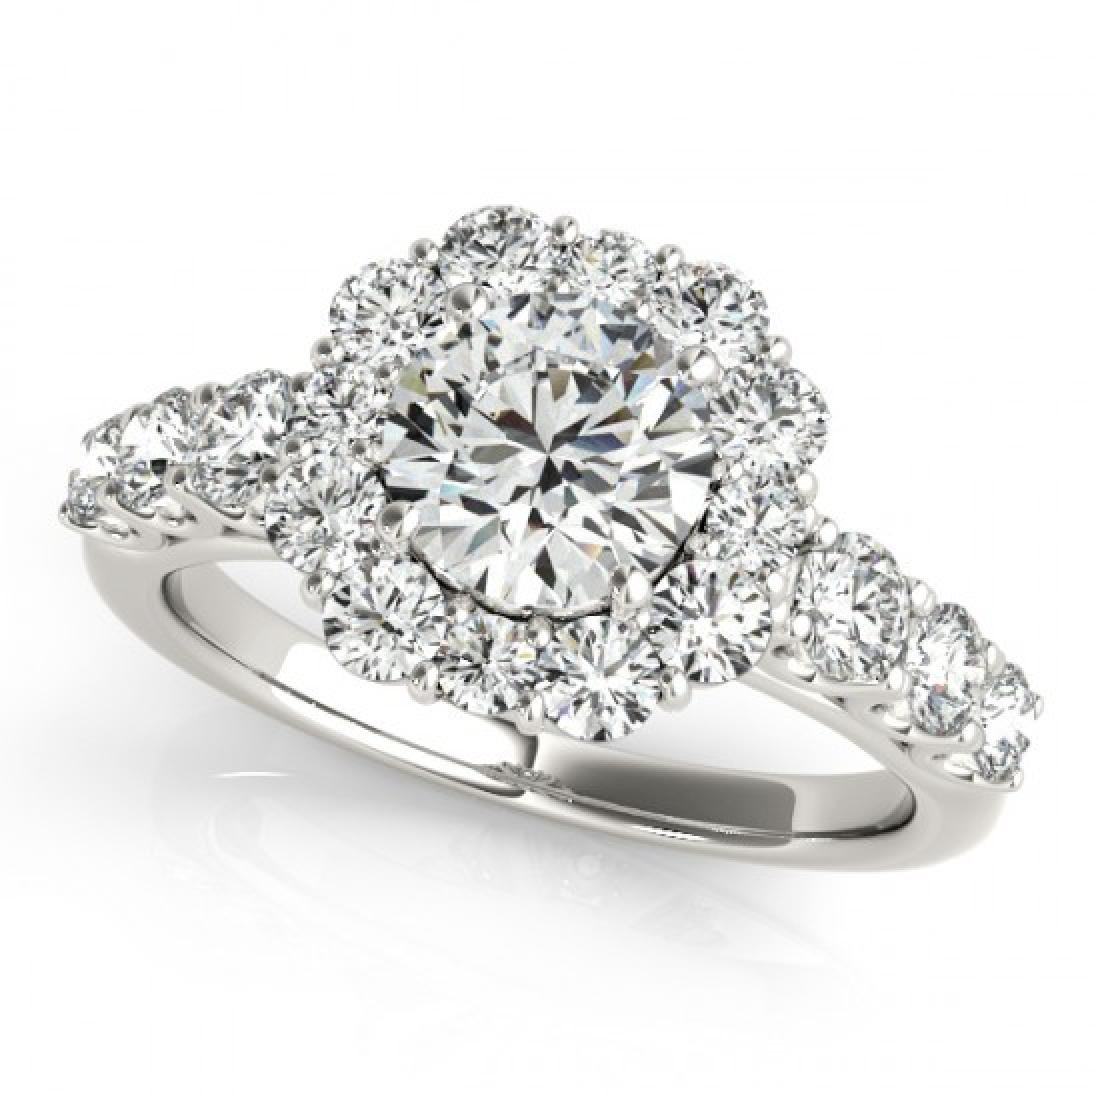 2.9 CTW Certified VS/SI Diamond Solitaire Halo Ring 14K